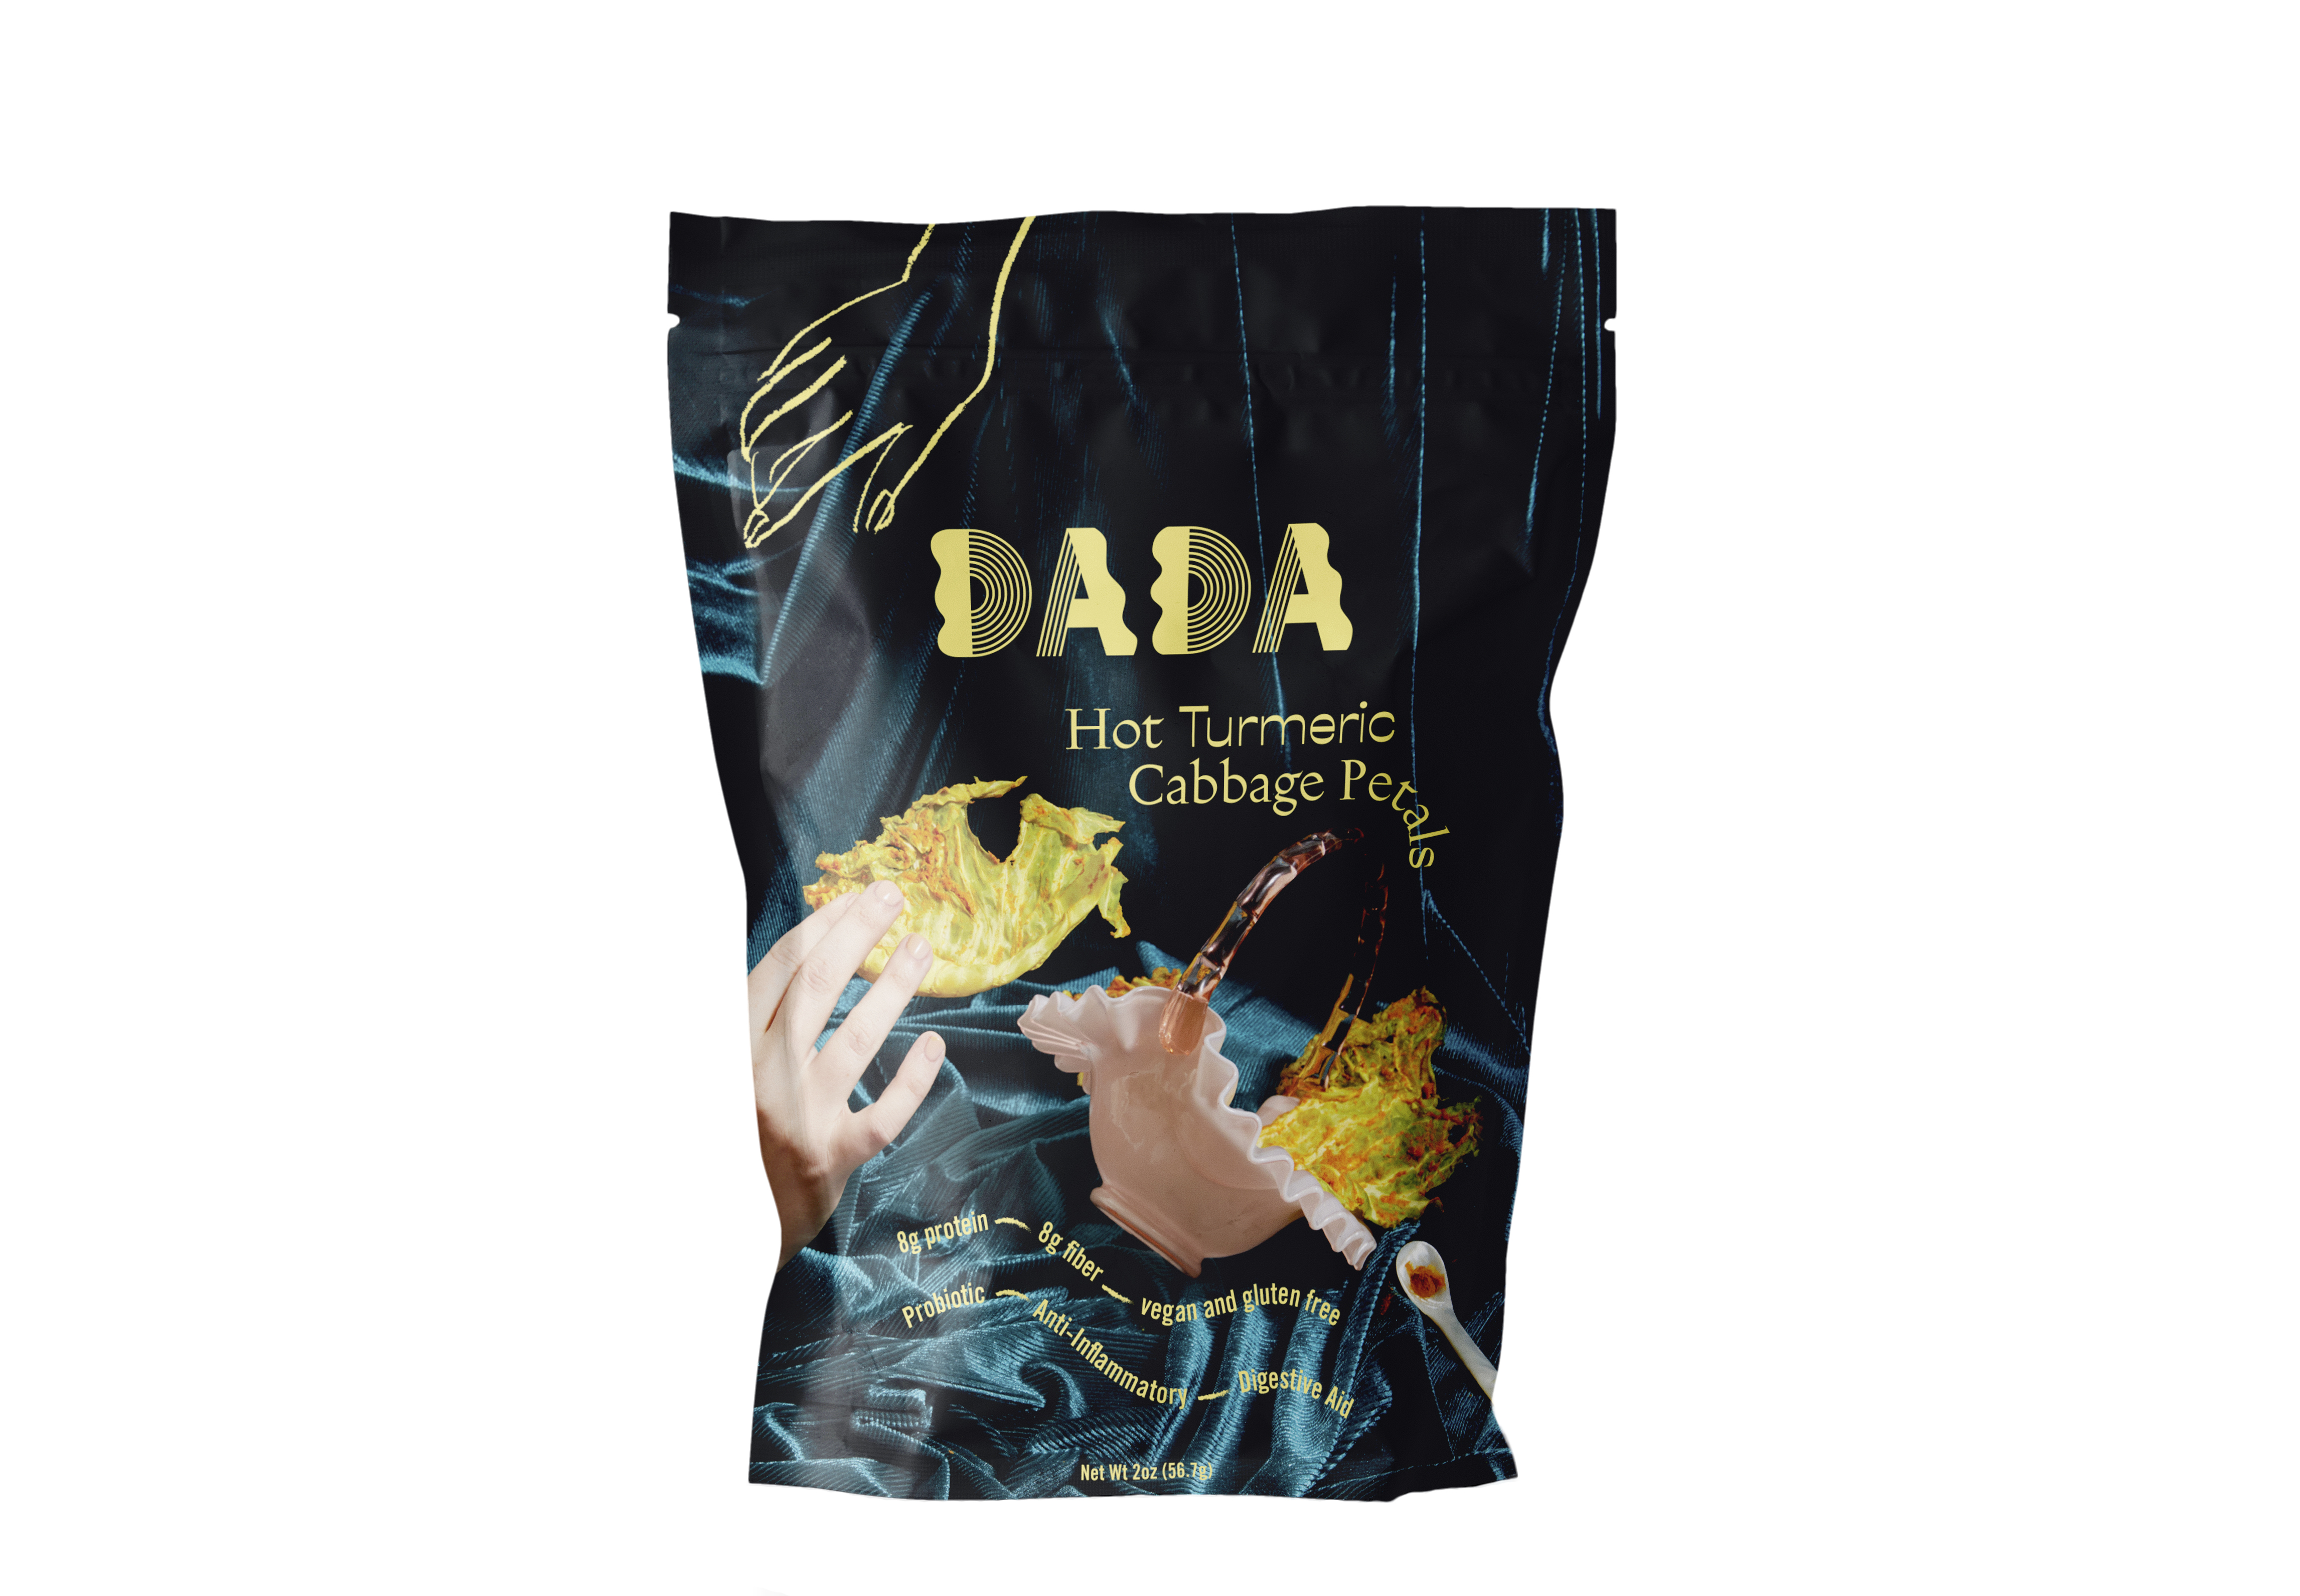 Dada Daily's hot turmeric cabbage petals